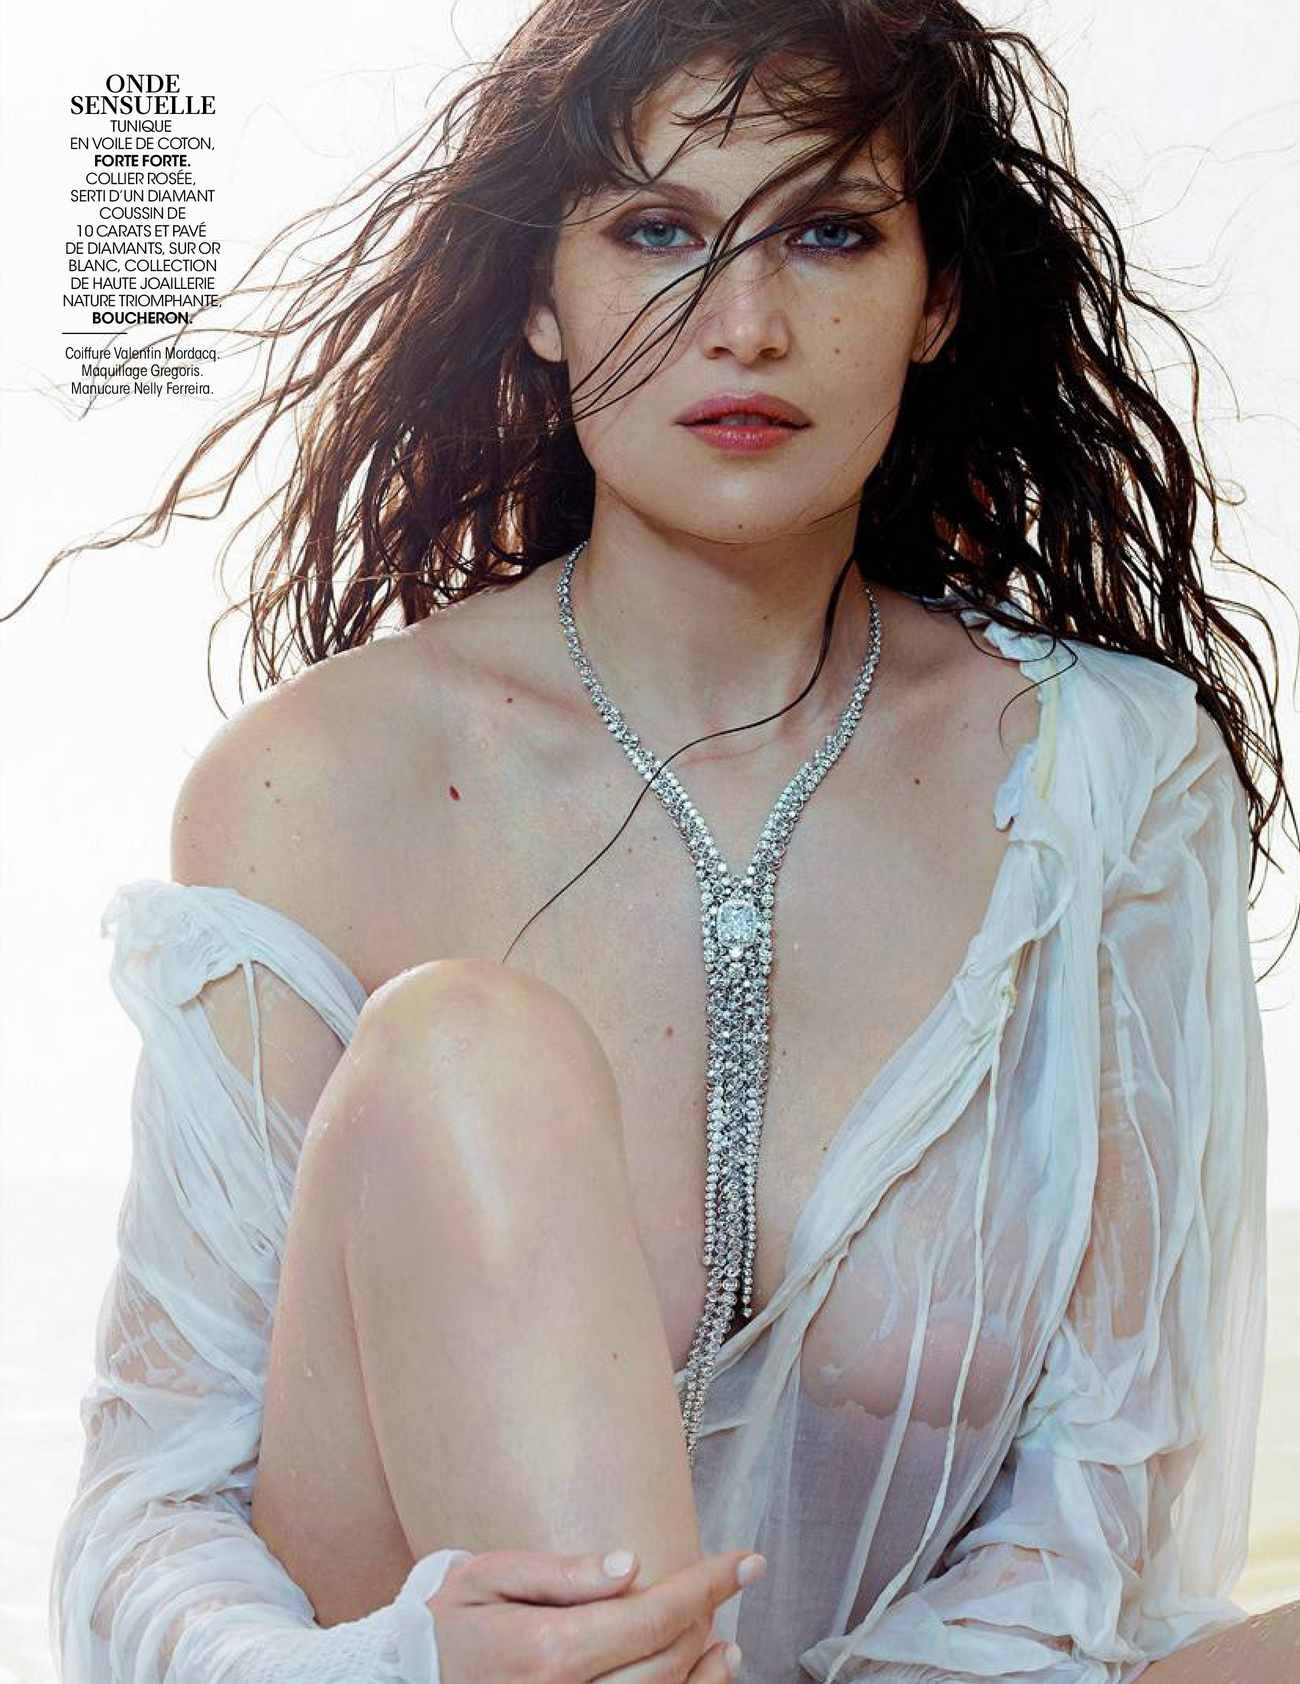 Laetitia-Casta-Madame-Figaro-18-May-201800005.jpg